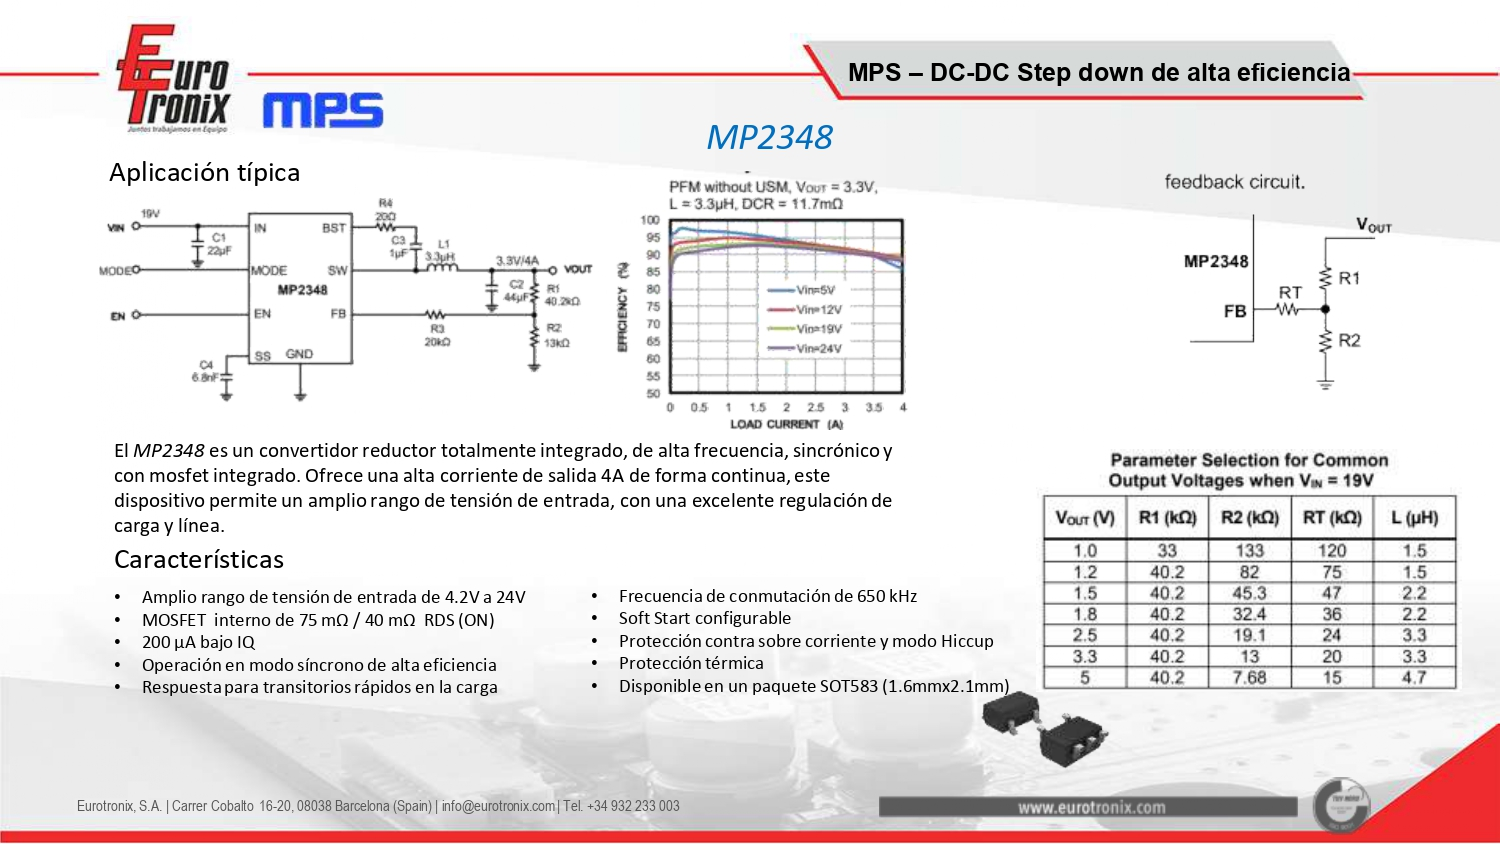 MPS - MP2348 (DC-DC Sincrono)